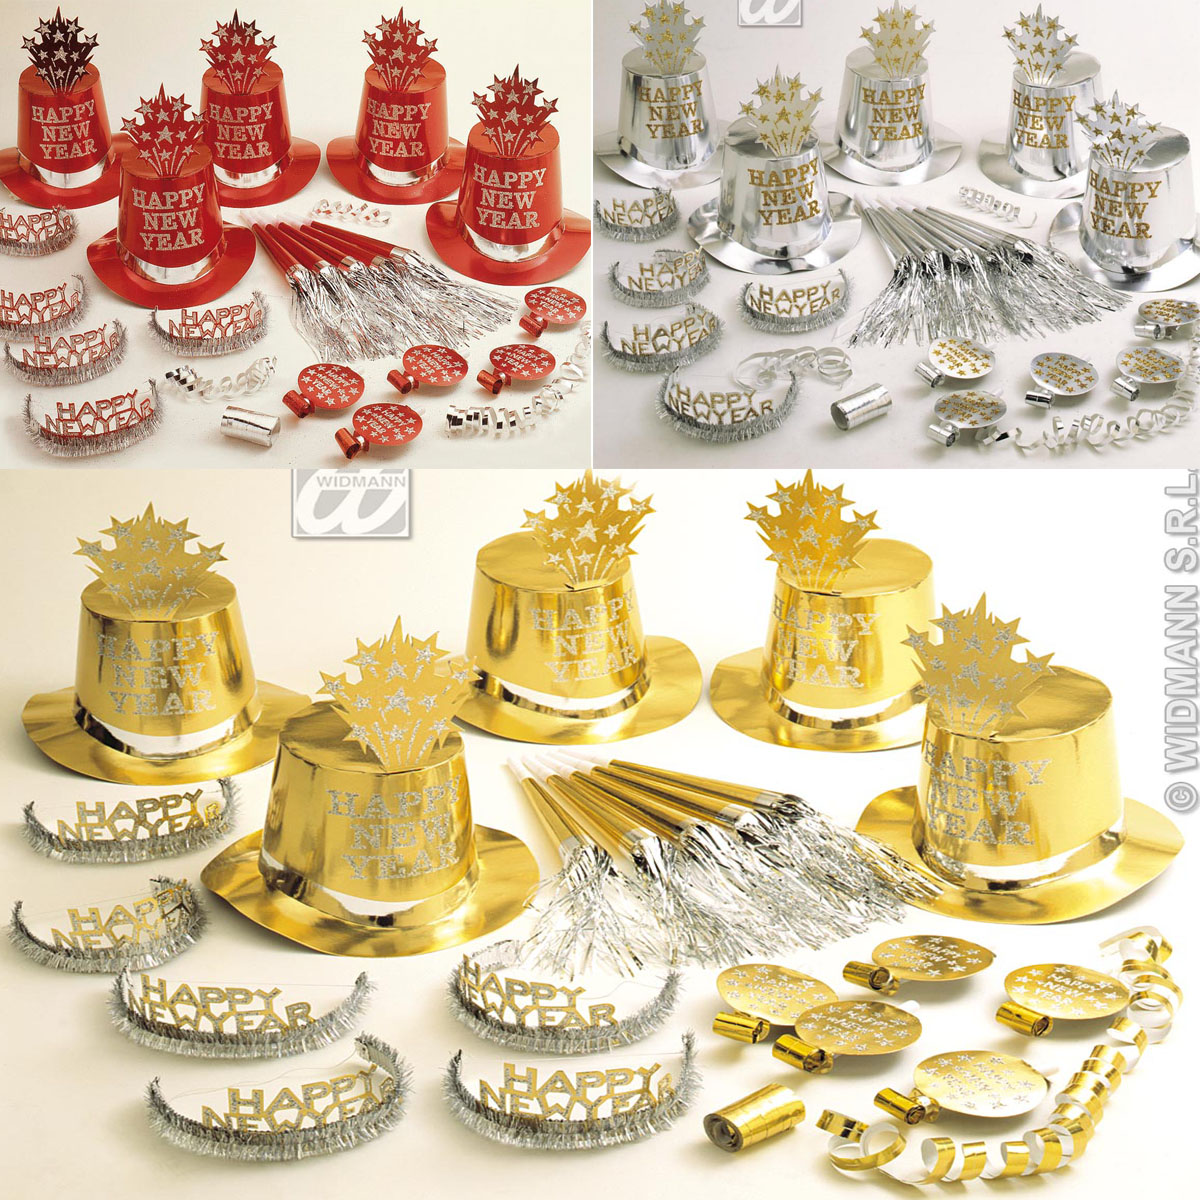 30tlg.Silvester Party Set,Zylinder, Krone,Trompete..10 Personen SILBER, GOLD ROT